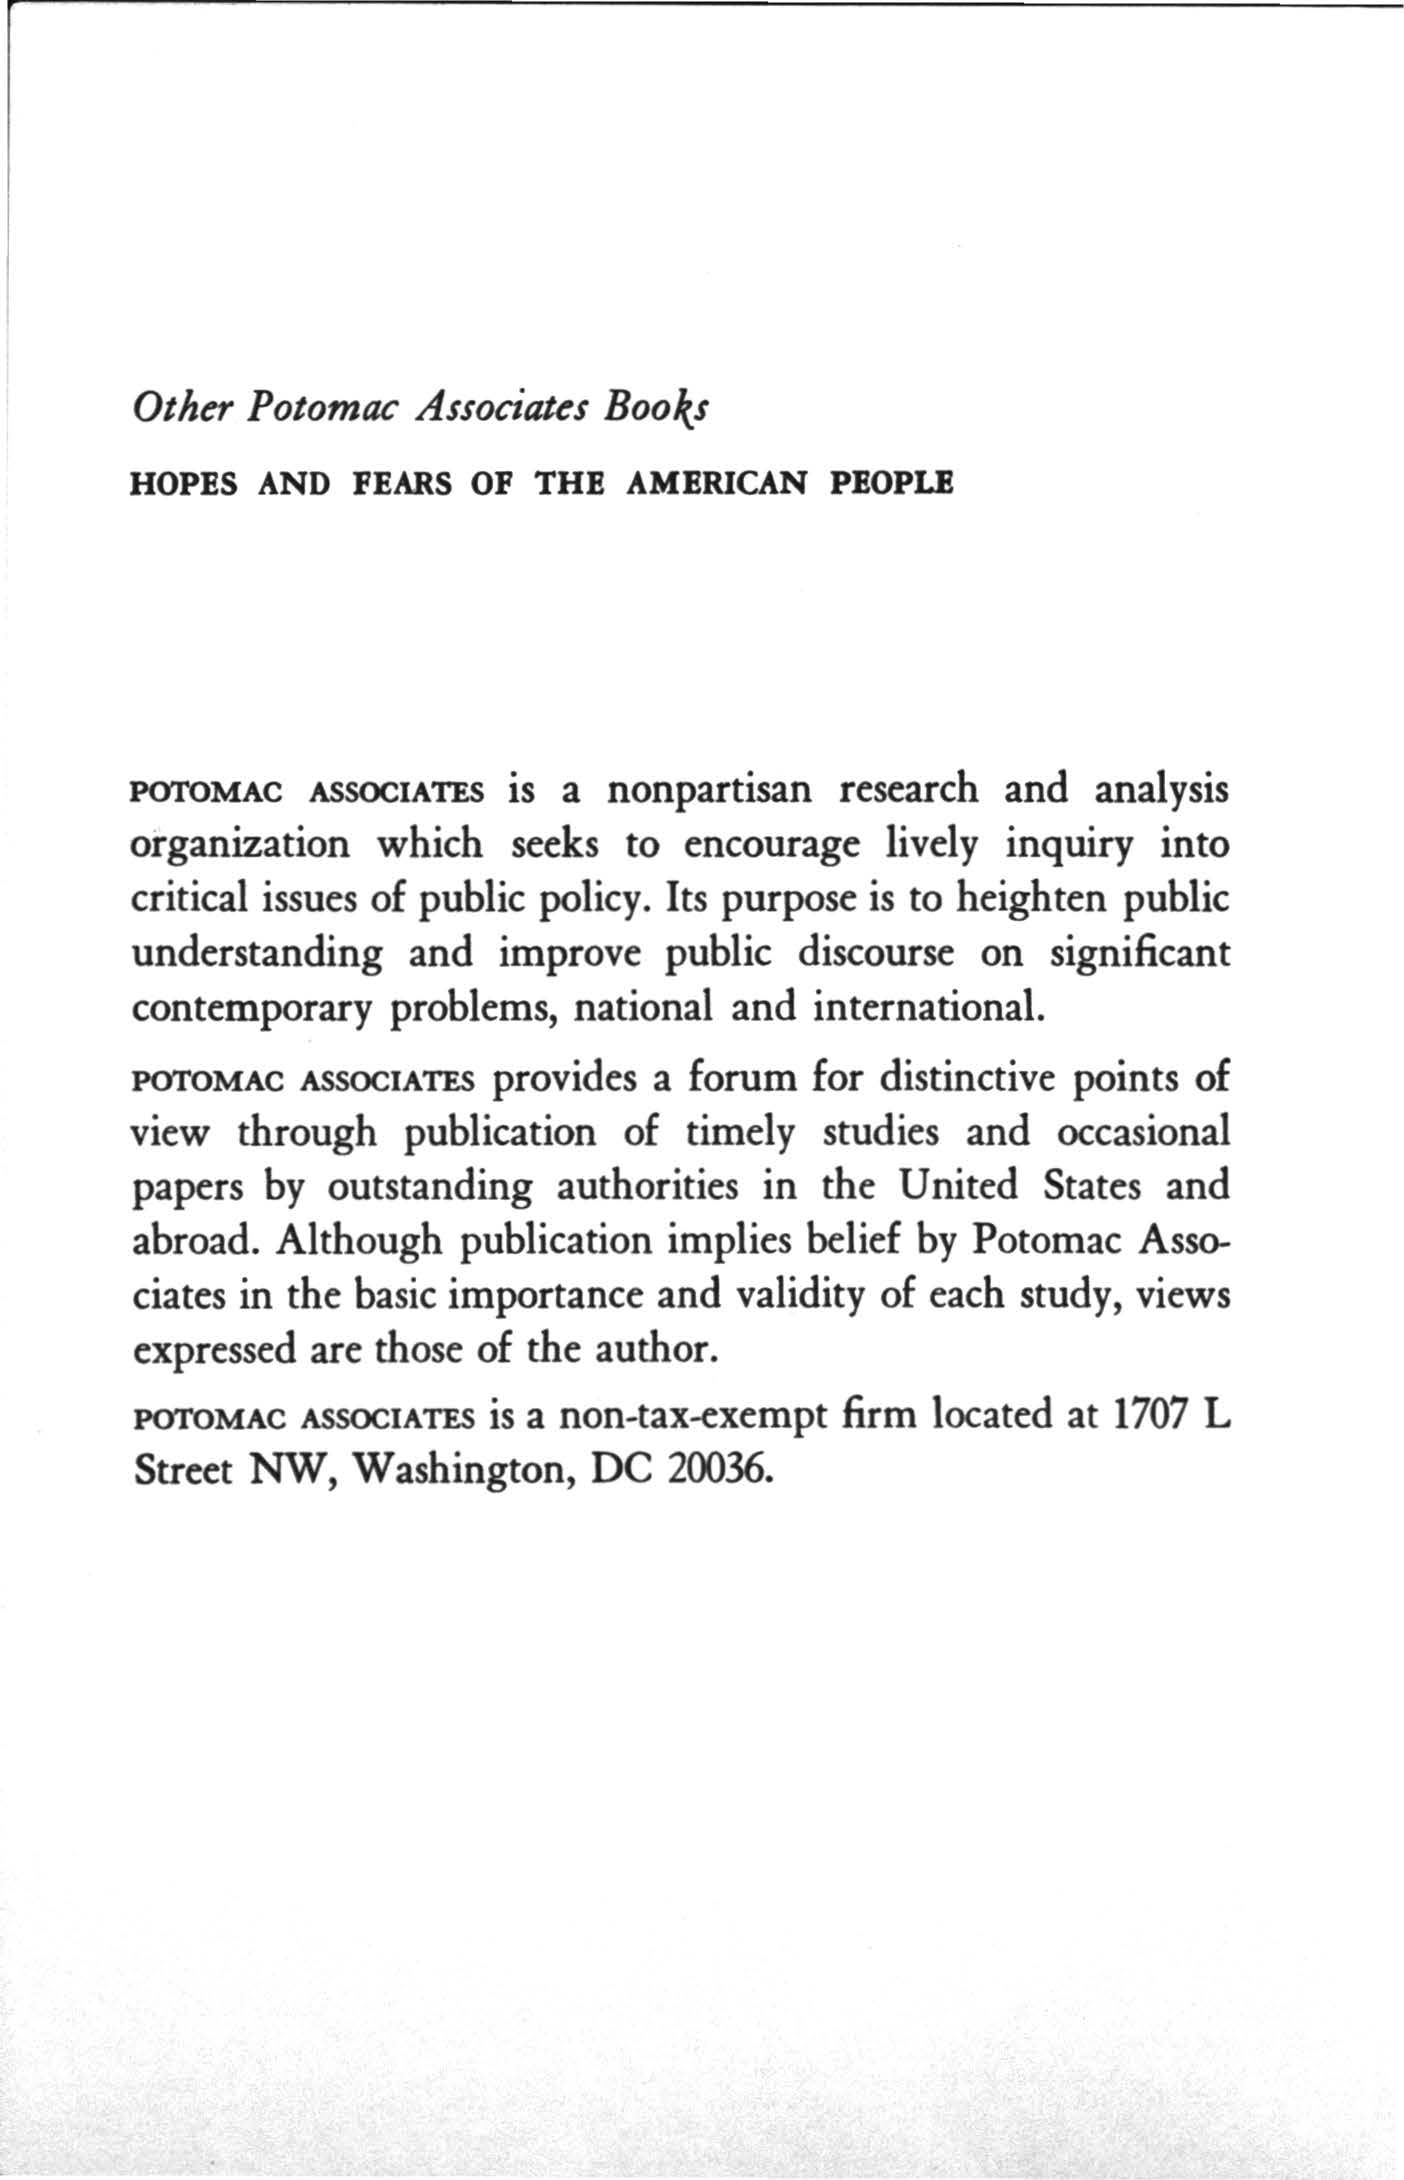 Potomac Associates Books HOPES AND FEARS OF THE AMERCAN PEOPLE POTOMAC ASSOCATES is a nonpartisan research and analysis organization which seeks to encourage lively inquiry into critical issues of